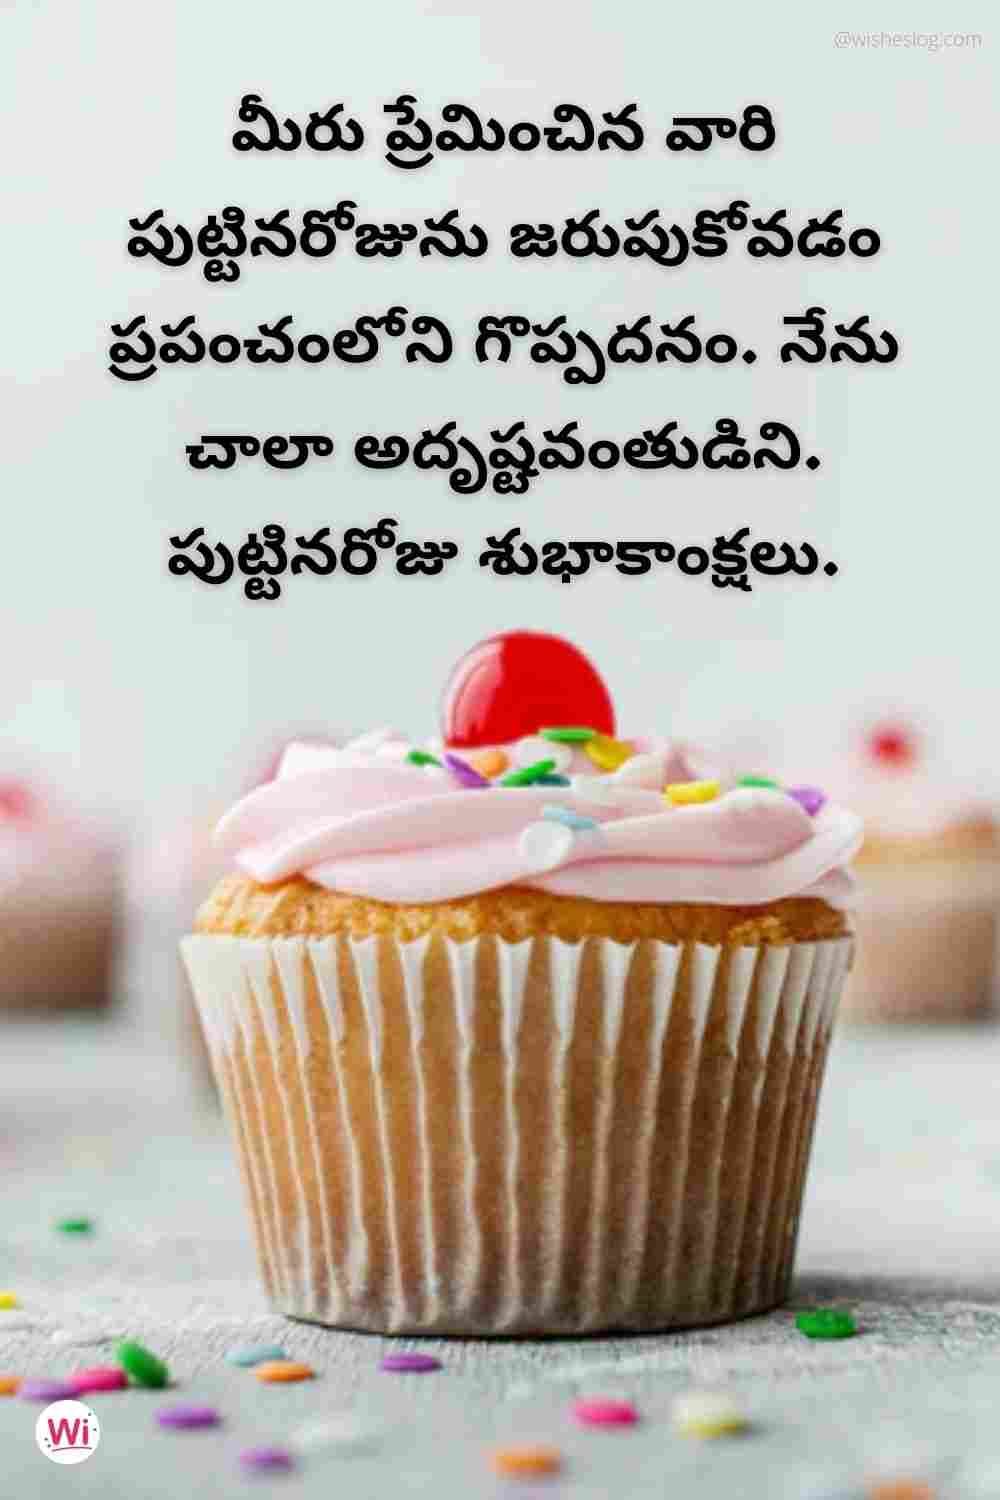 happy birthday wishes in telugu images free download